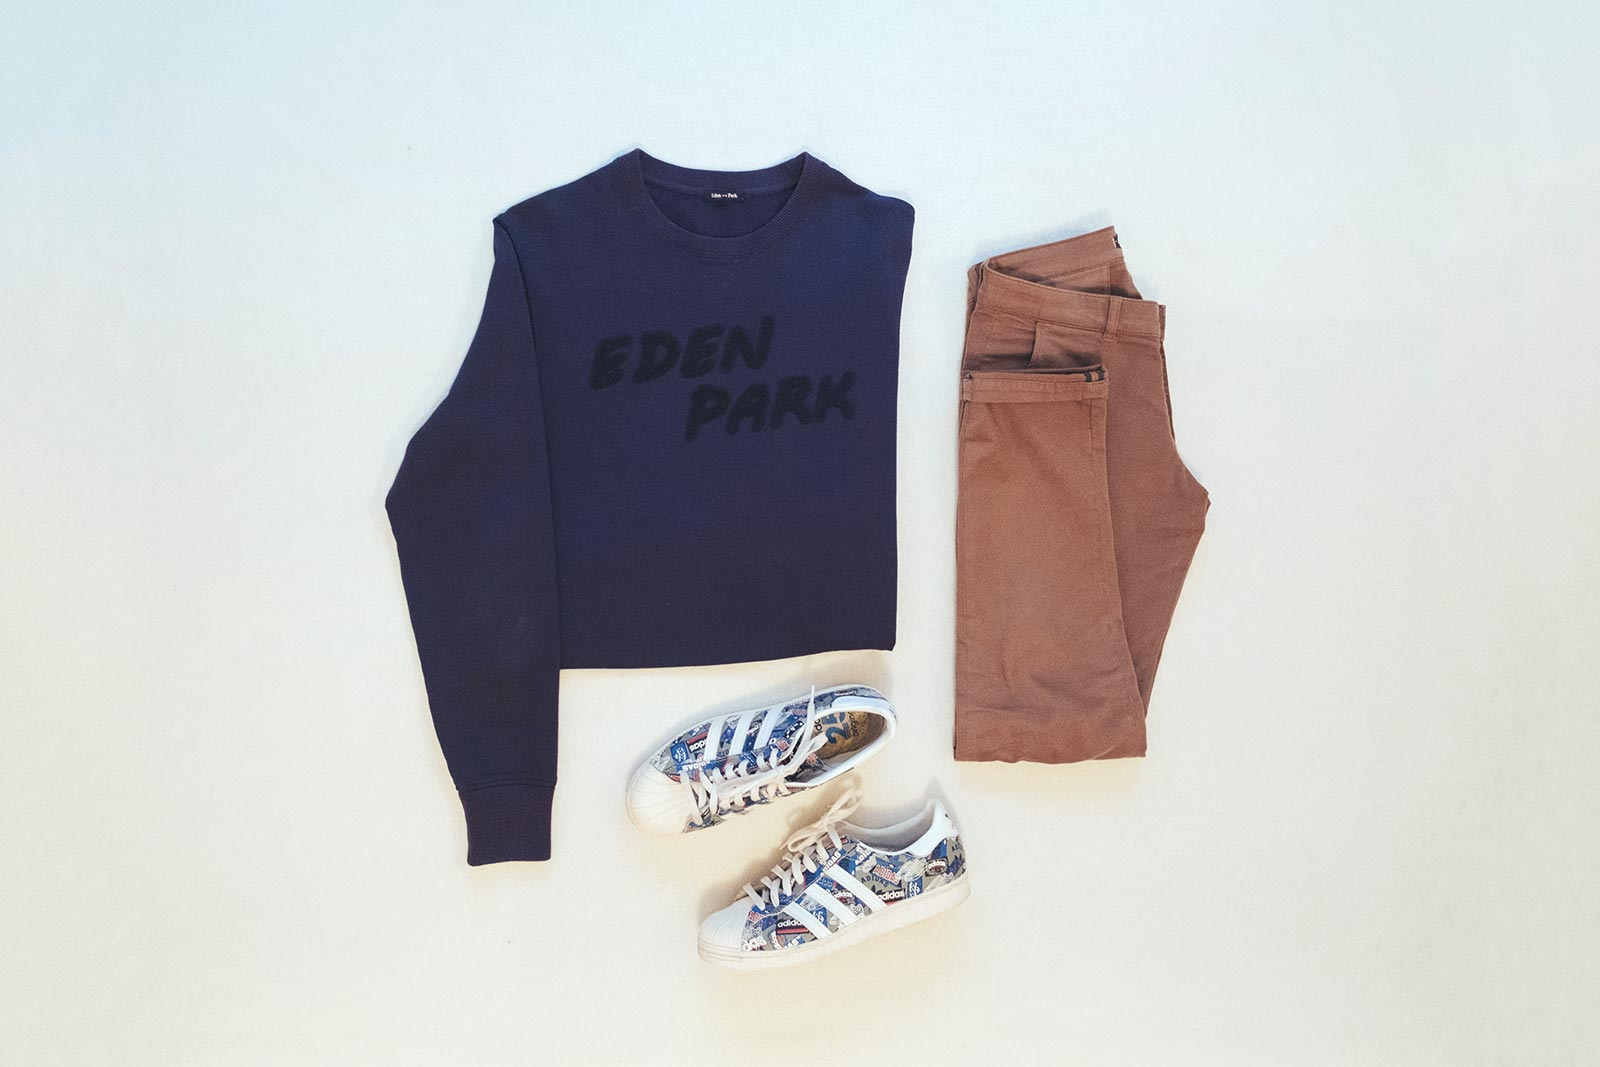 Look Eden Park printemps été 2017 Sweat